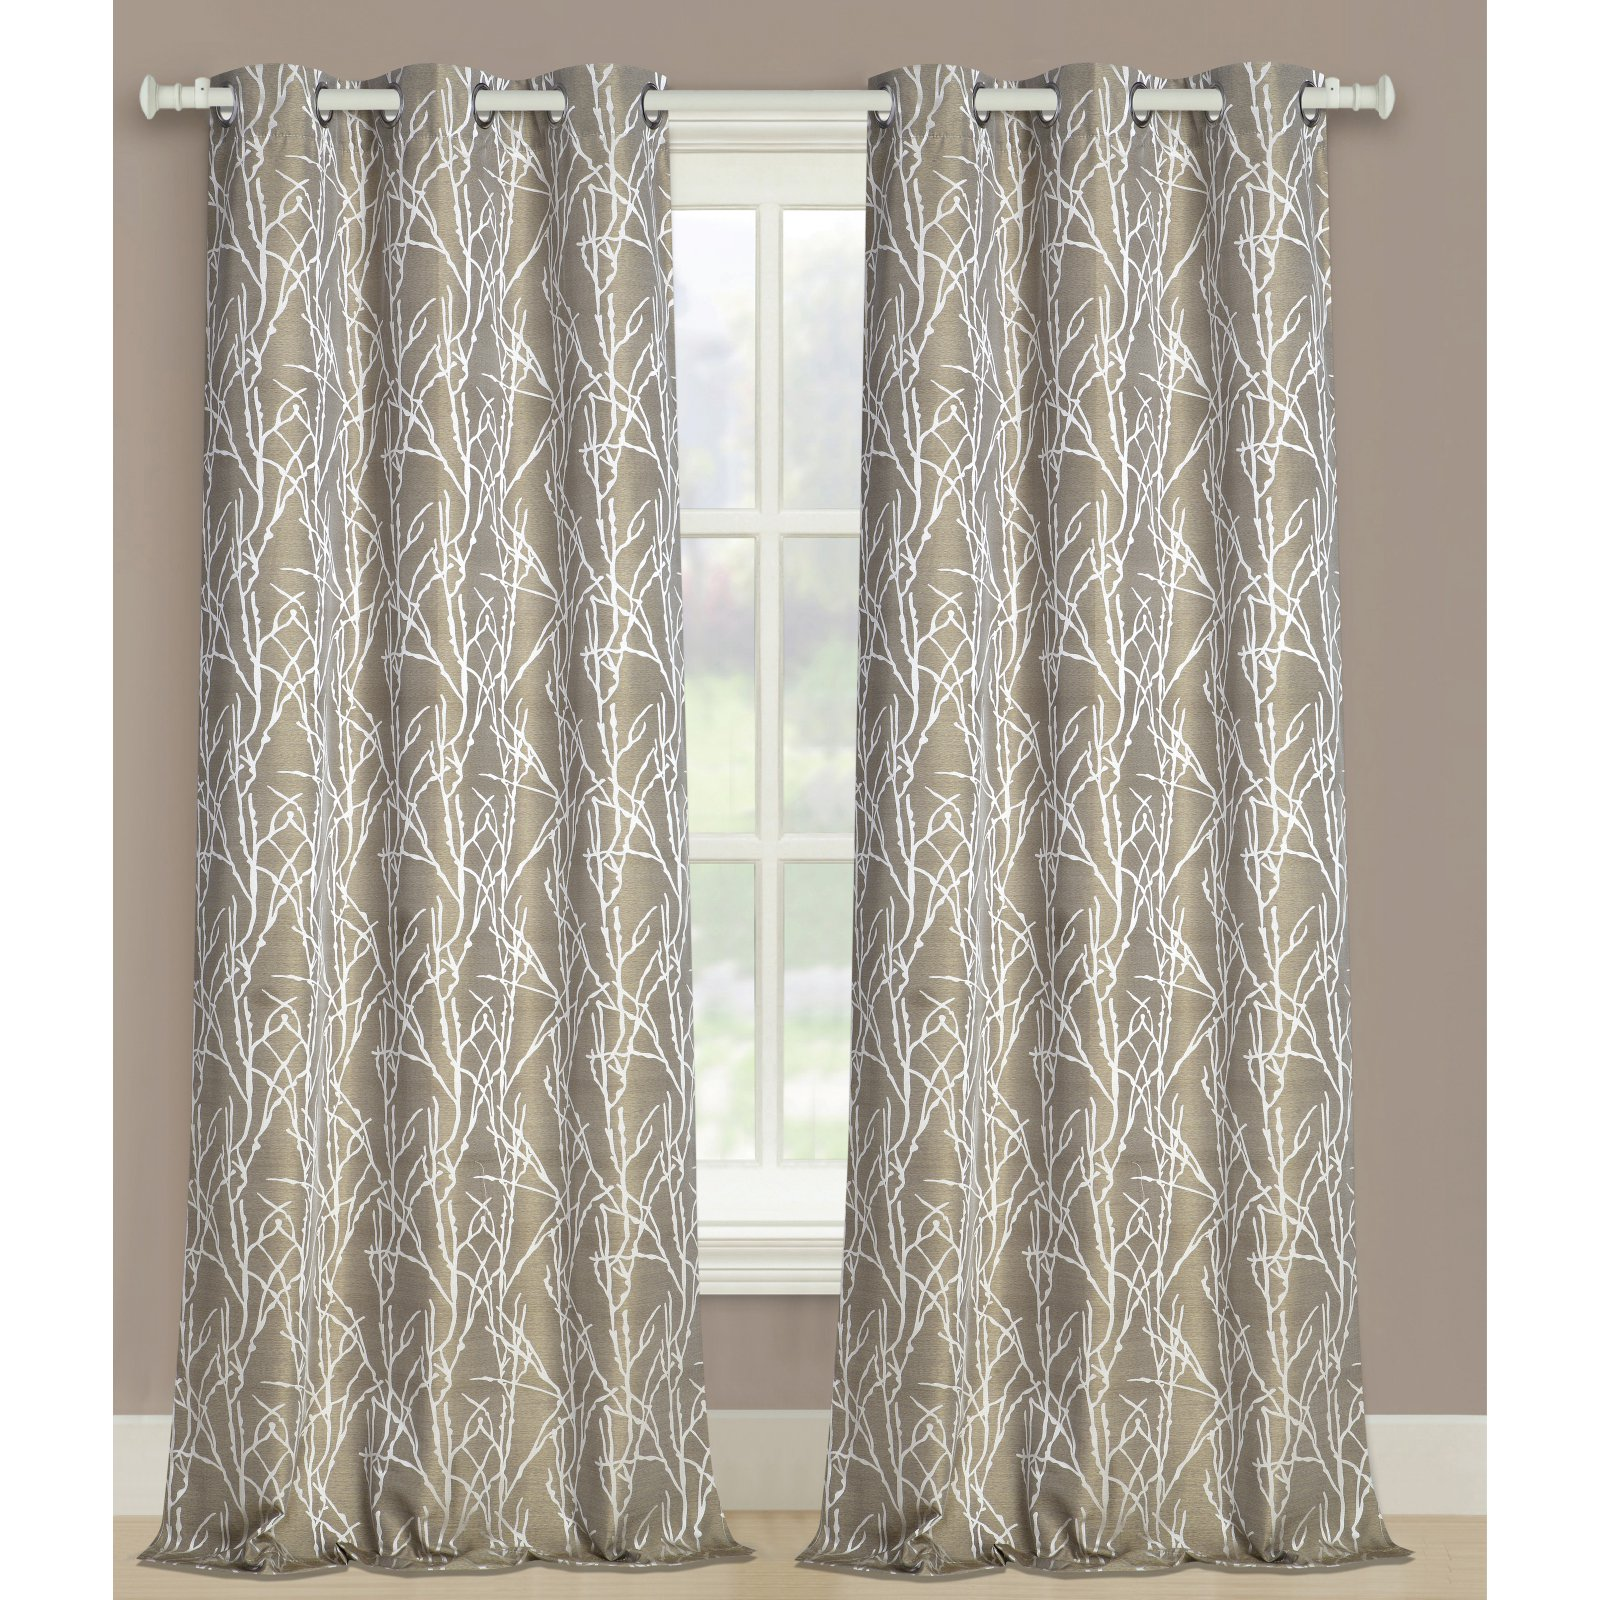 United Curtain Taylor Woven Panel Pairs Curtains Panel Curtains